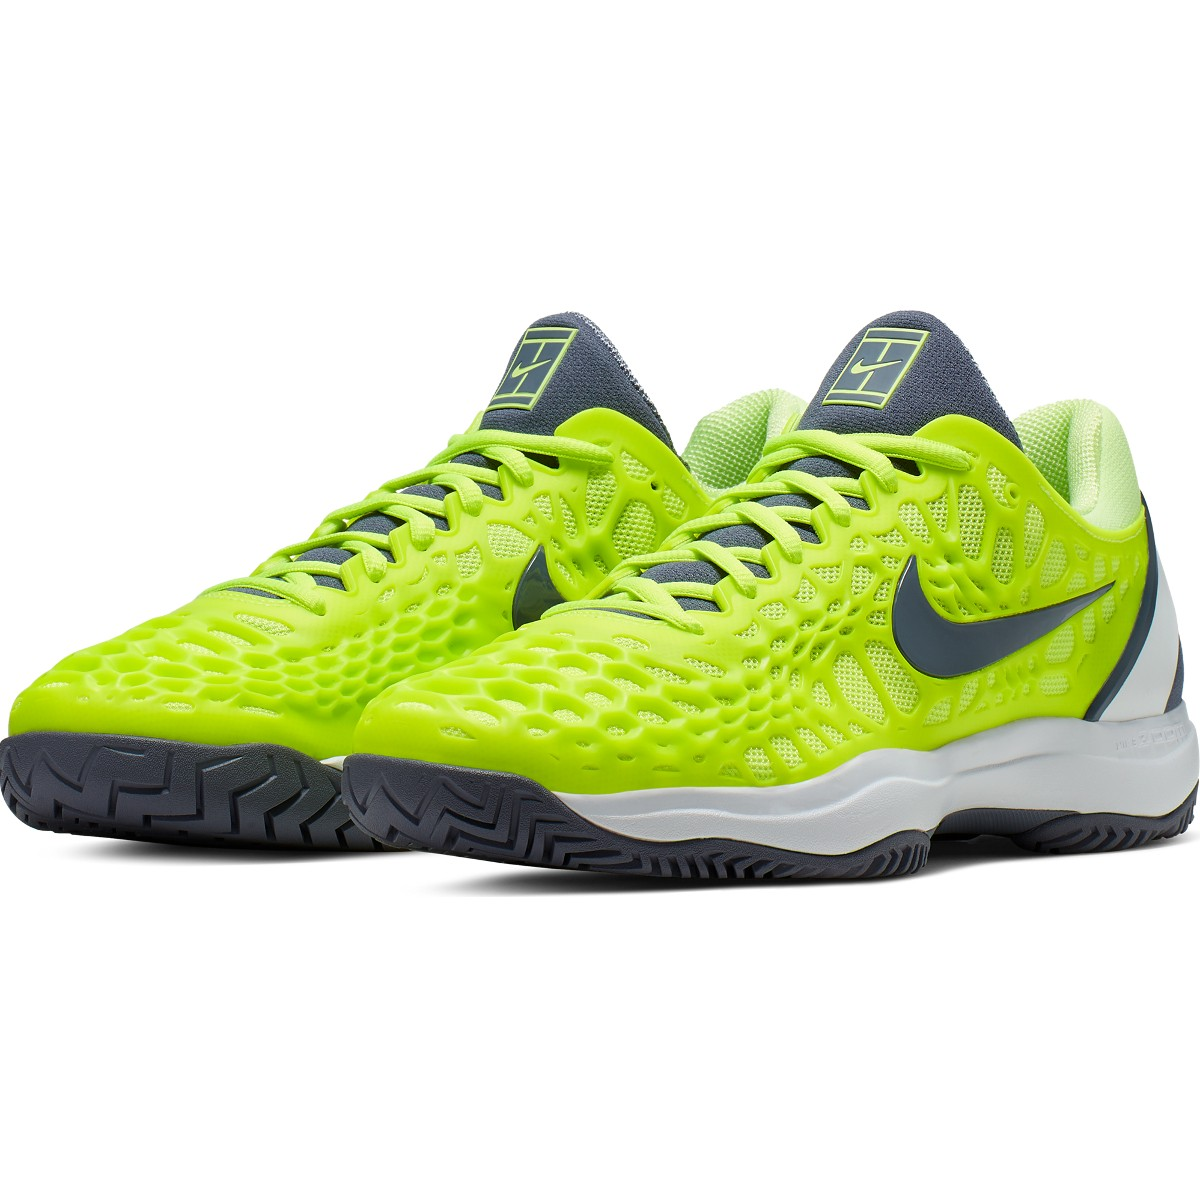 Zoom Nike Surfaces 3 Toutes Homme Cage Chaussures Air 29IHED